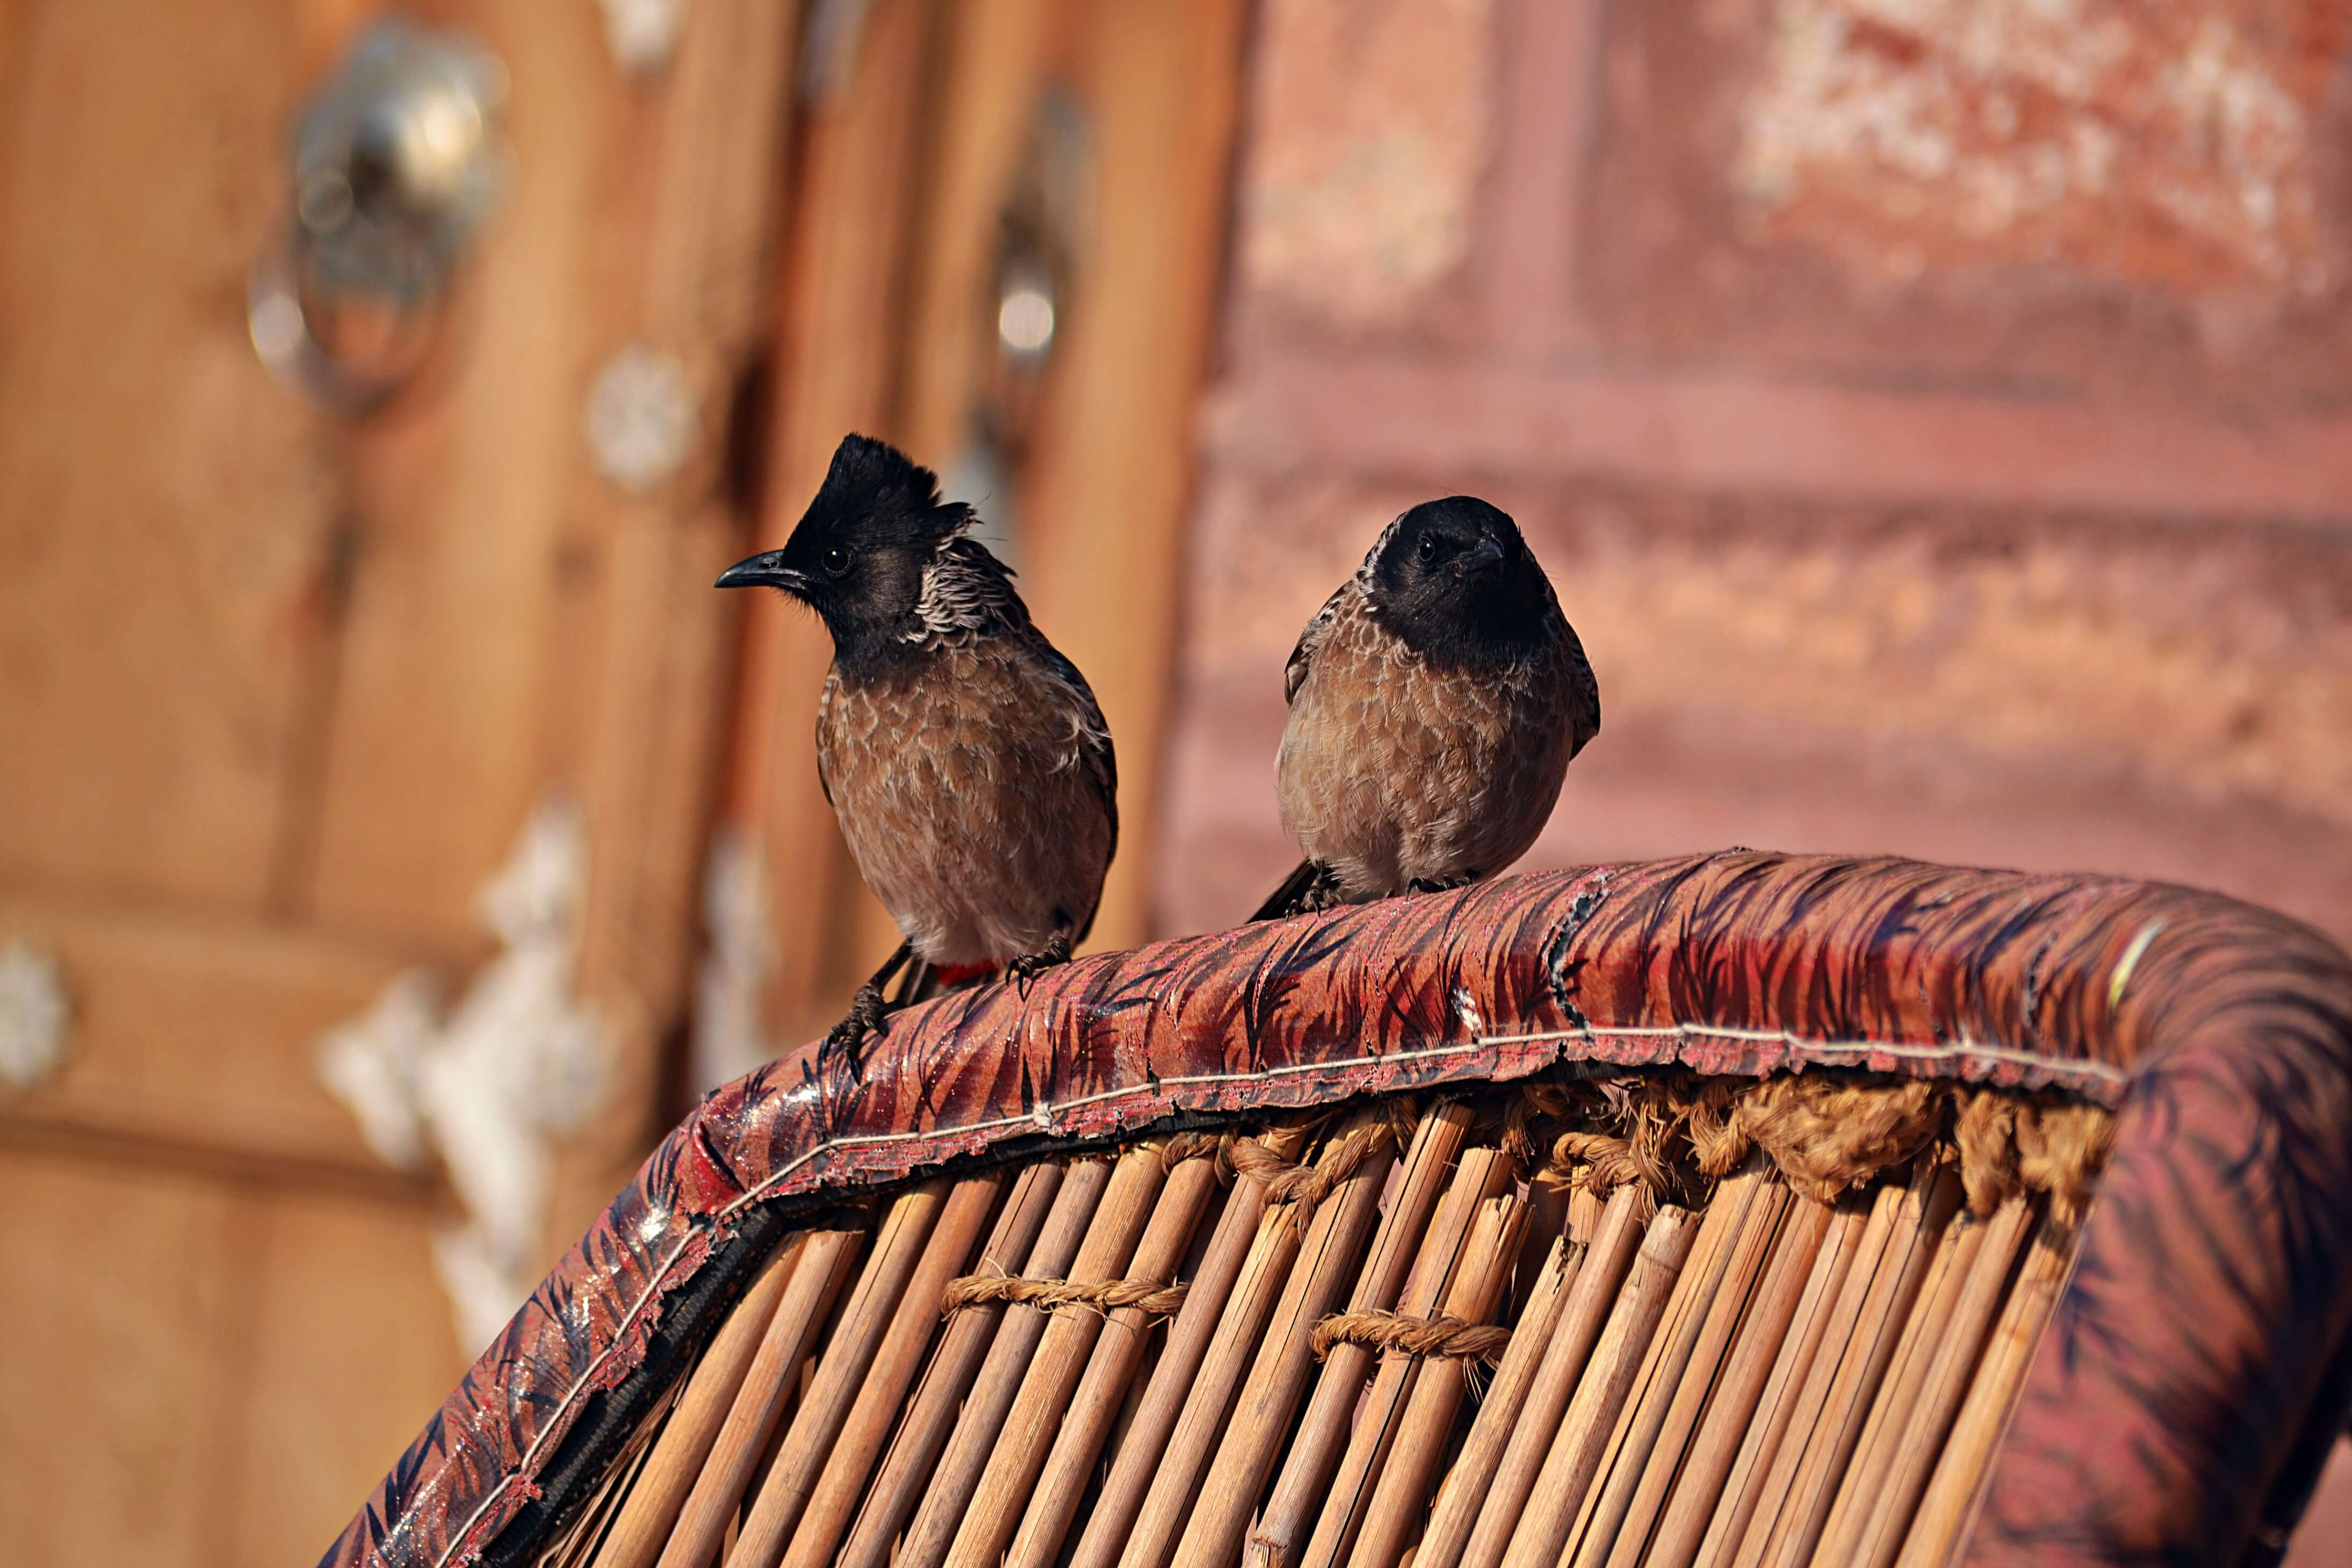 Birds sitting on a chair, on the Hacra Dhani property